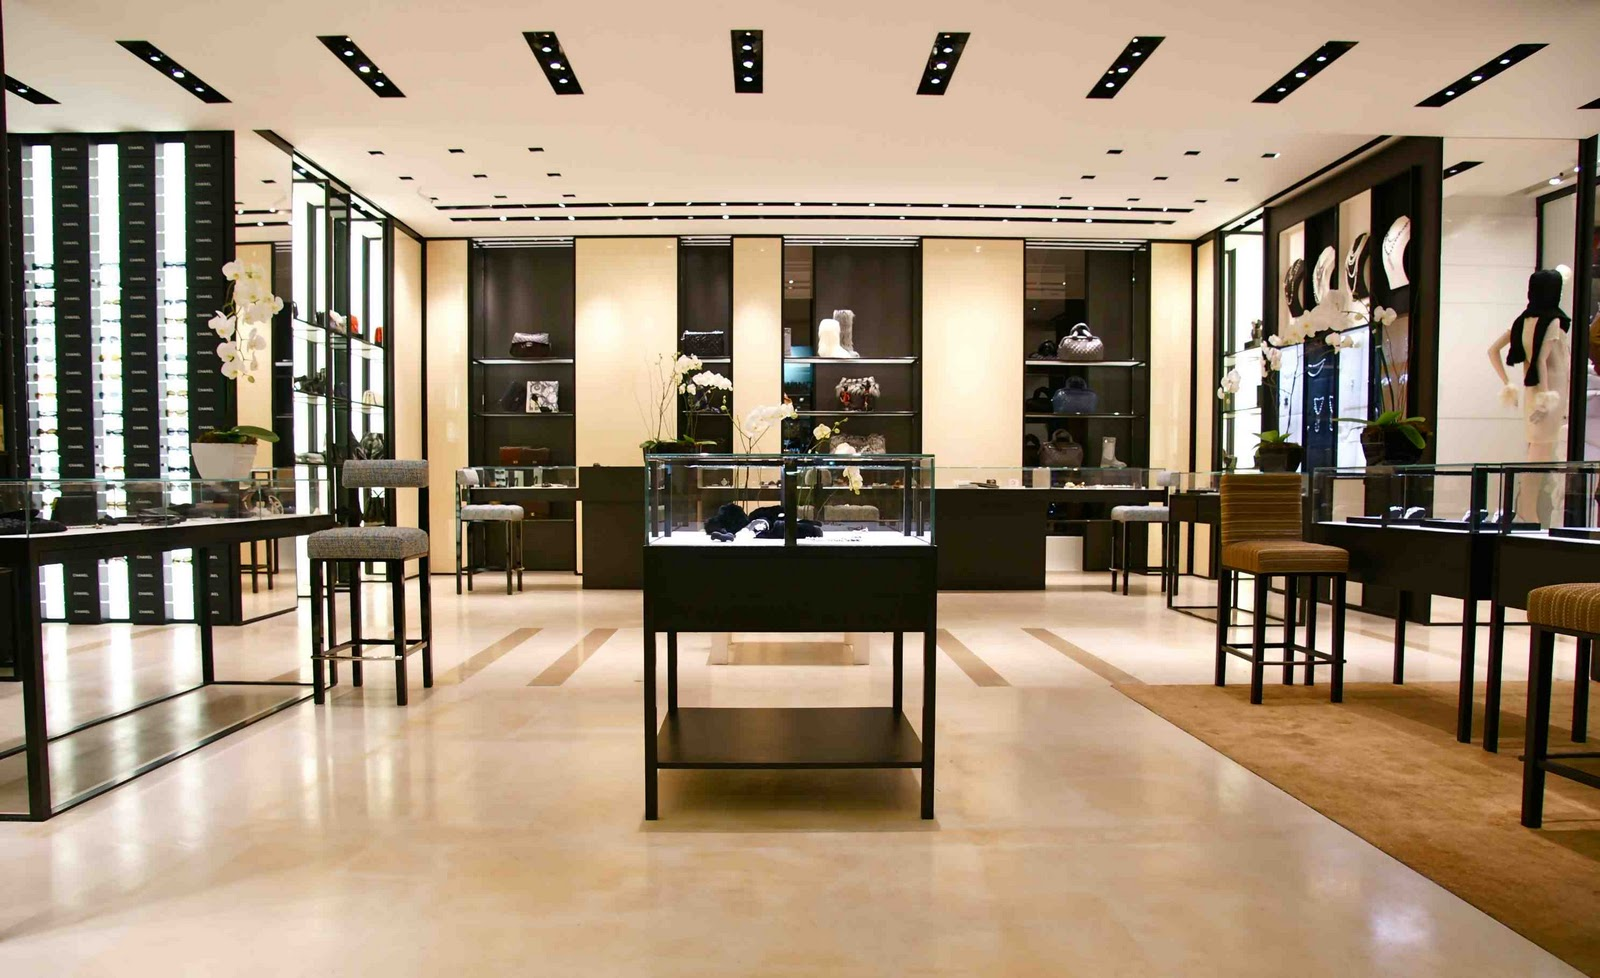 CHANEL en Saks Fifth Avenue México  Latin Fashion News